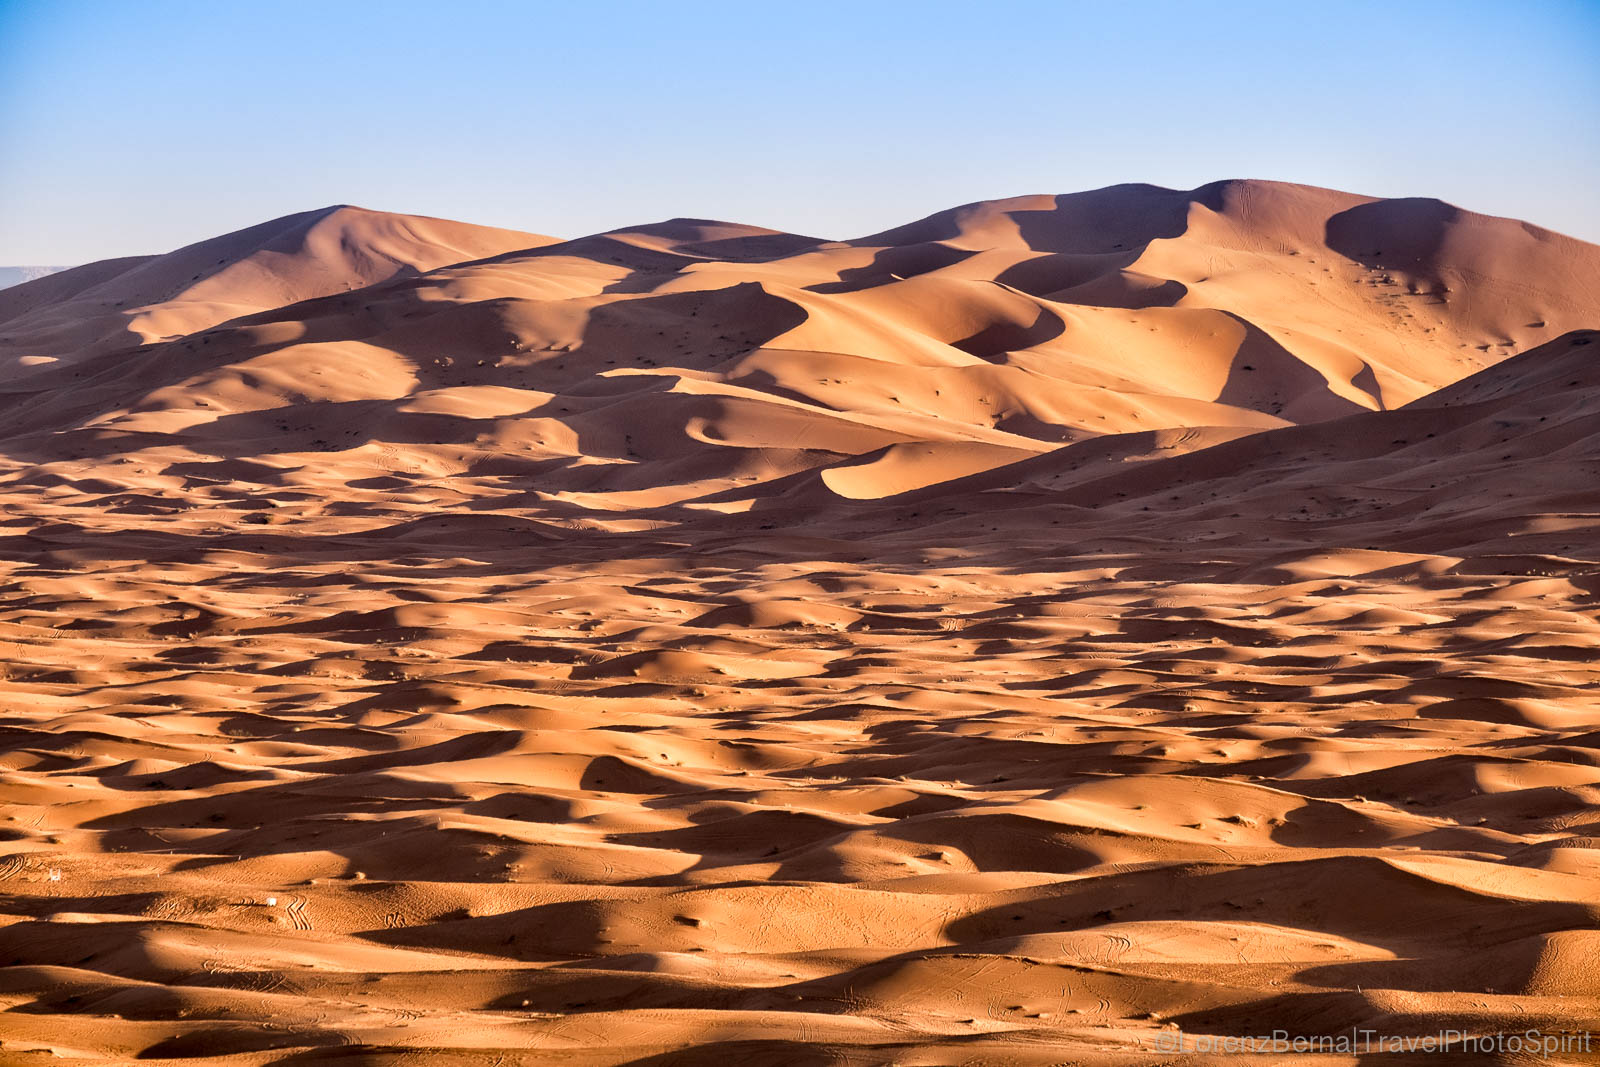 The sand dunes of Merzouga desert in Morocco